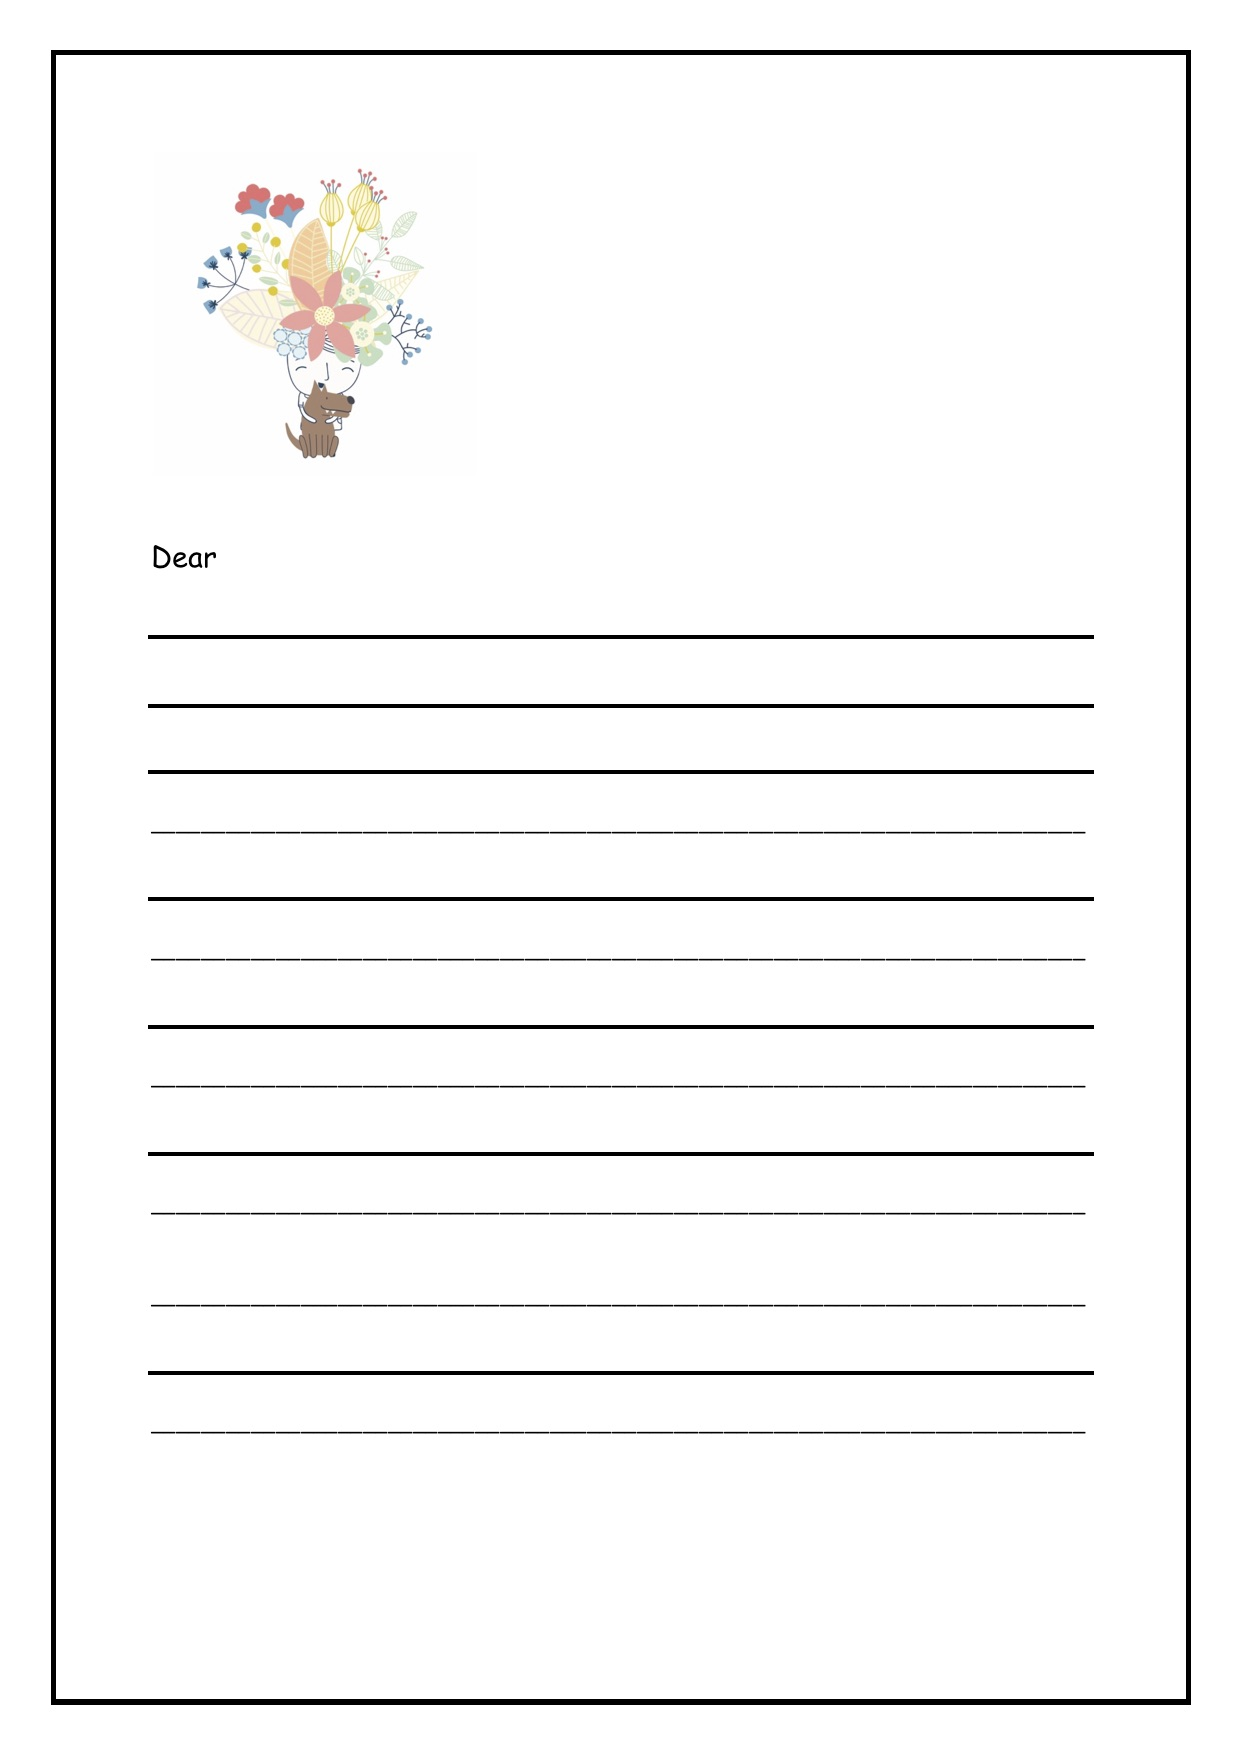 Gratitude letter - For: Year 2-6To go with: Introductory lessons or use in isolation